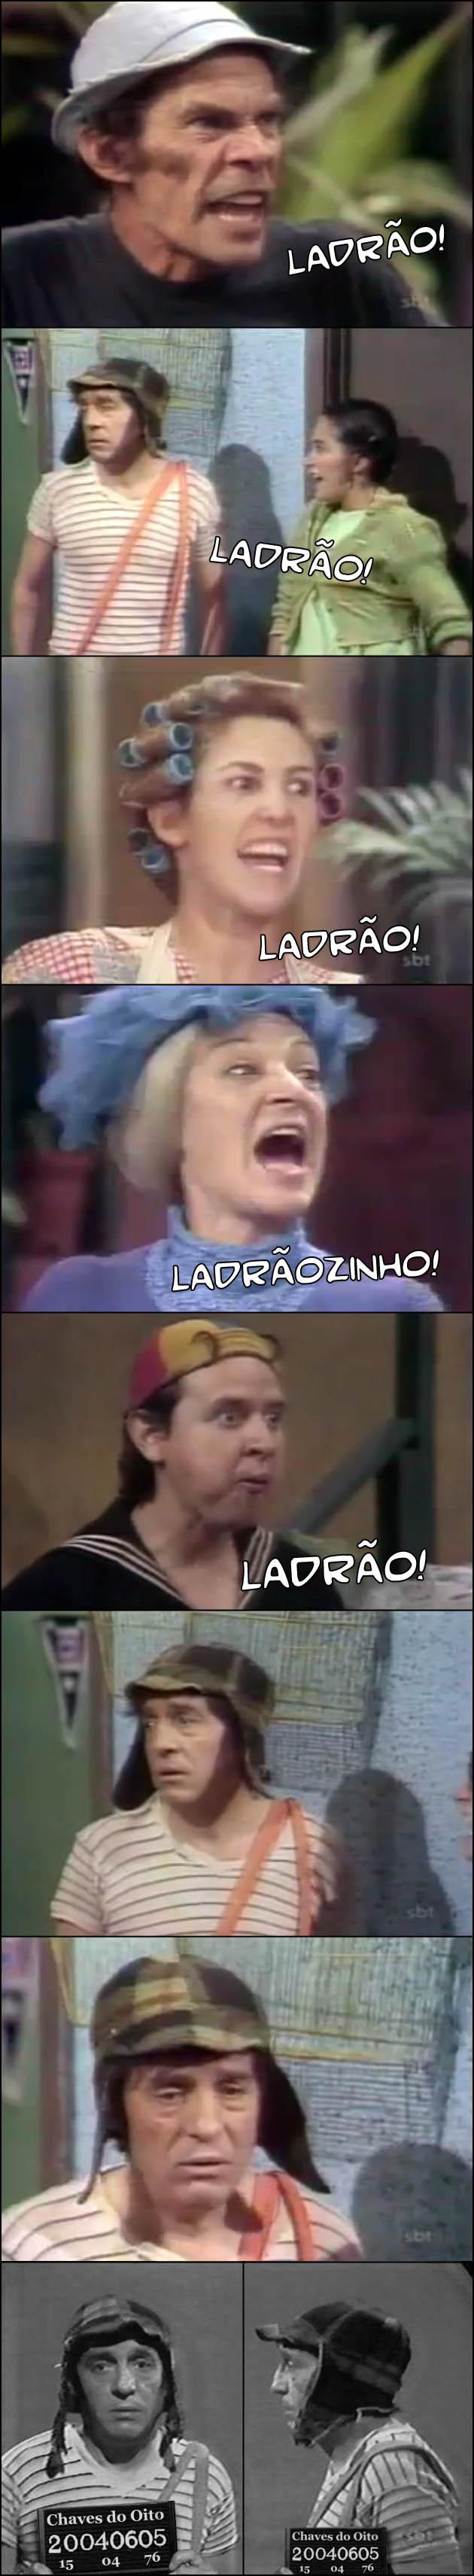 CHAVES LADRO Chaves ladro